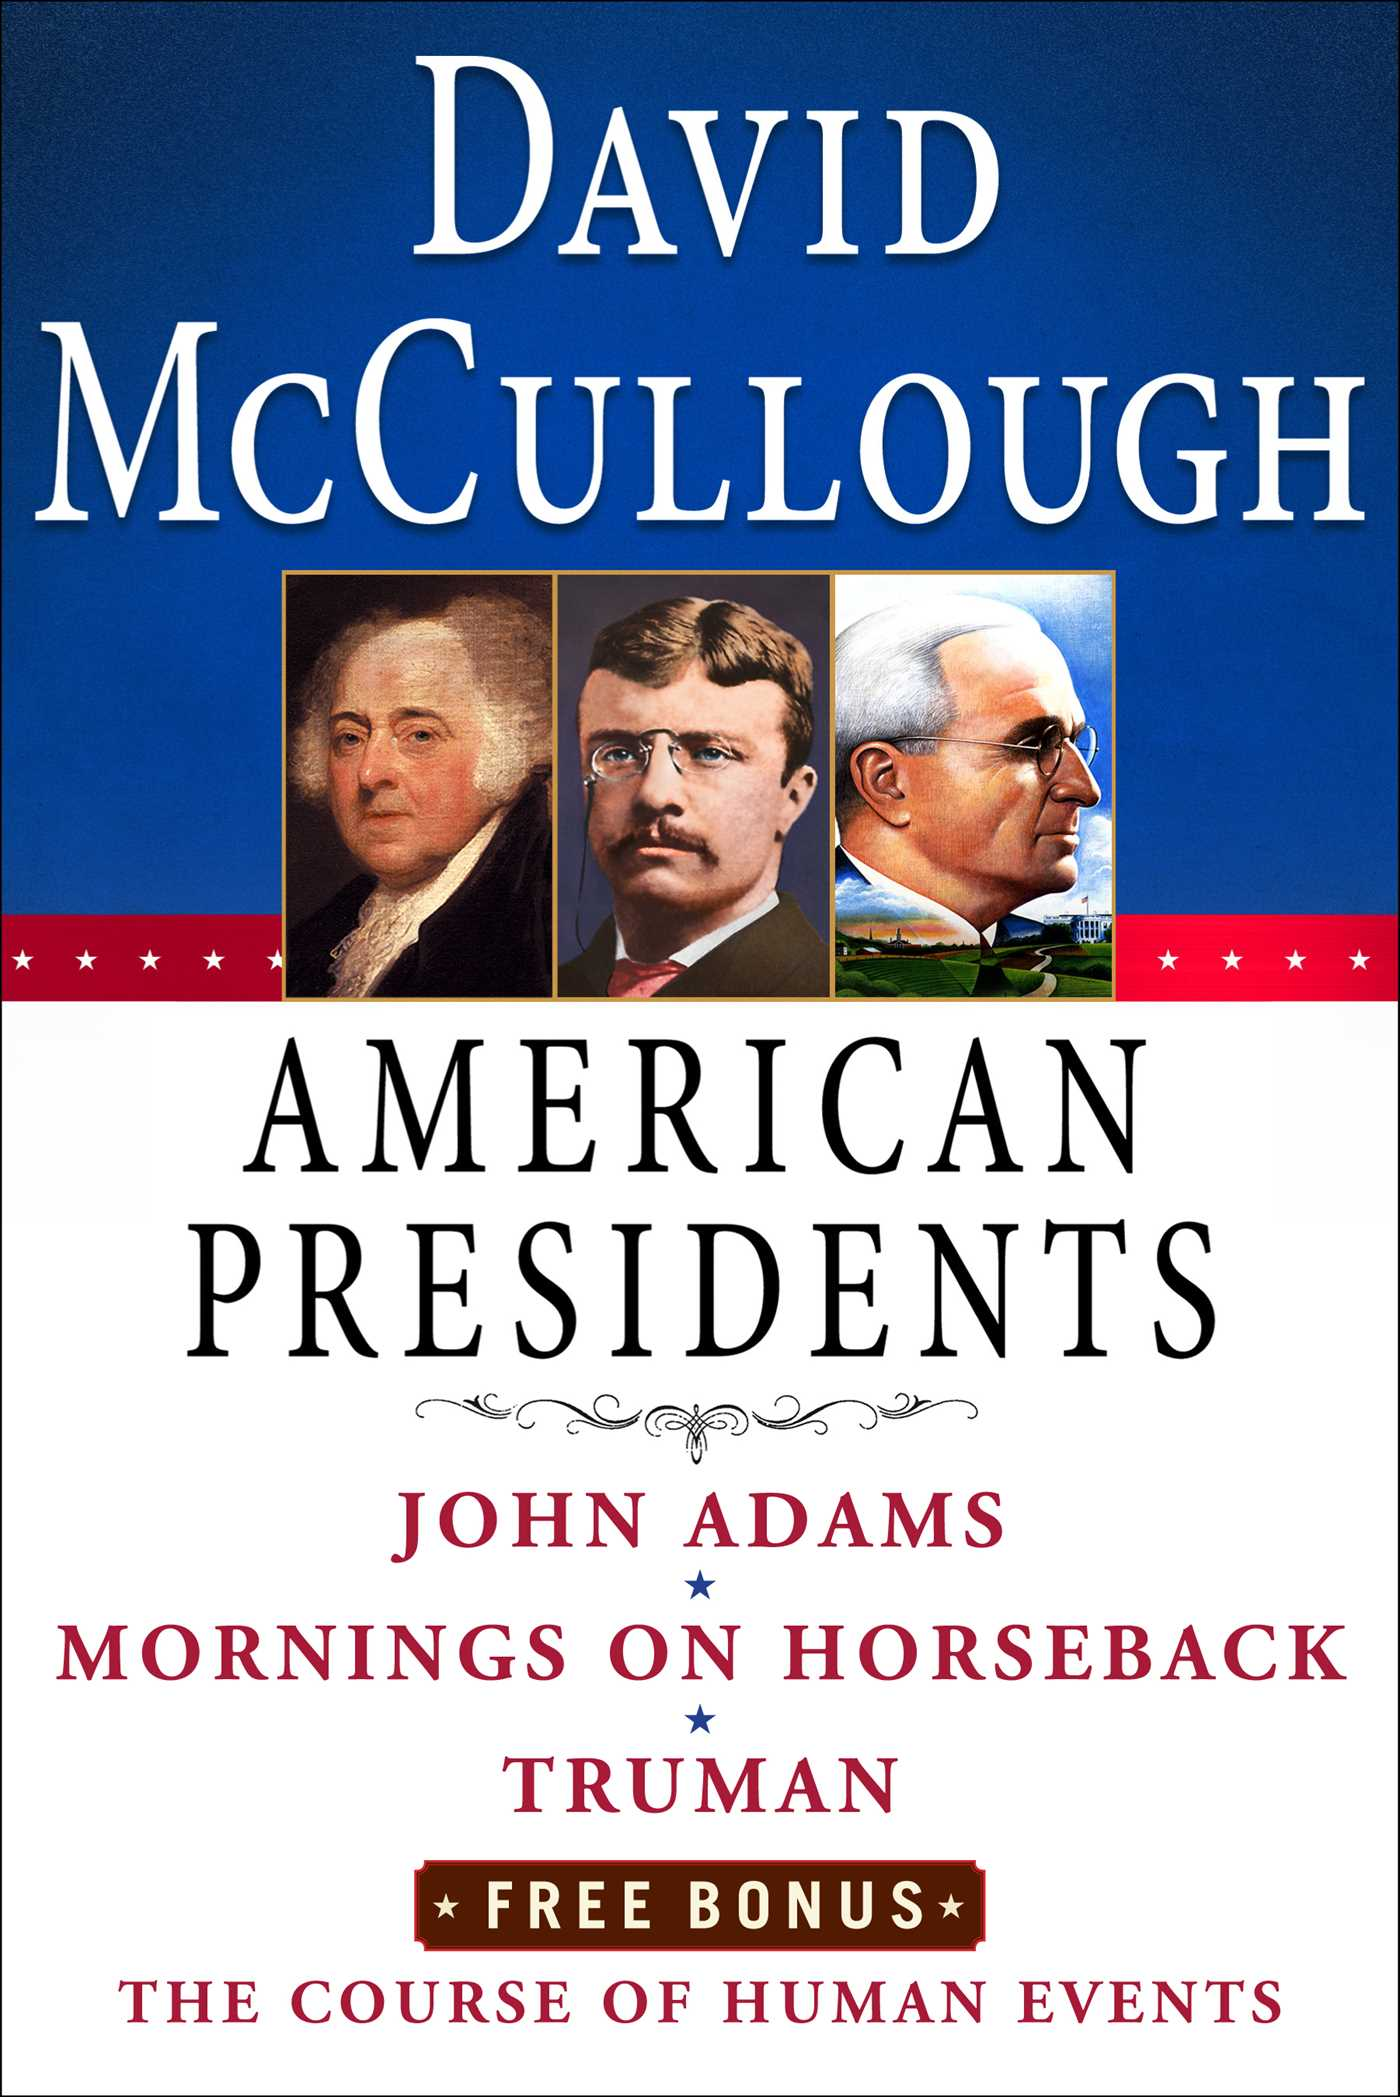 David Mccullough American Presidents Ebook Box Set